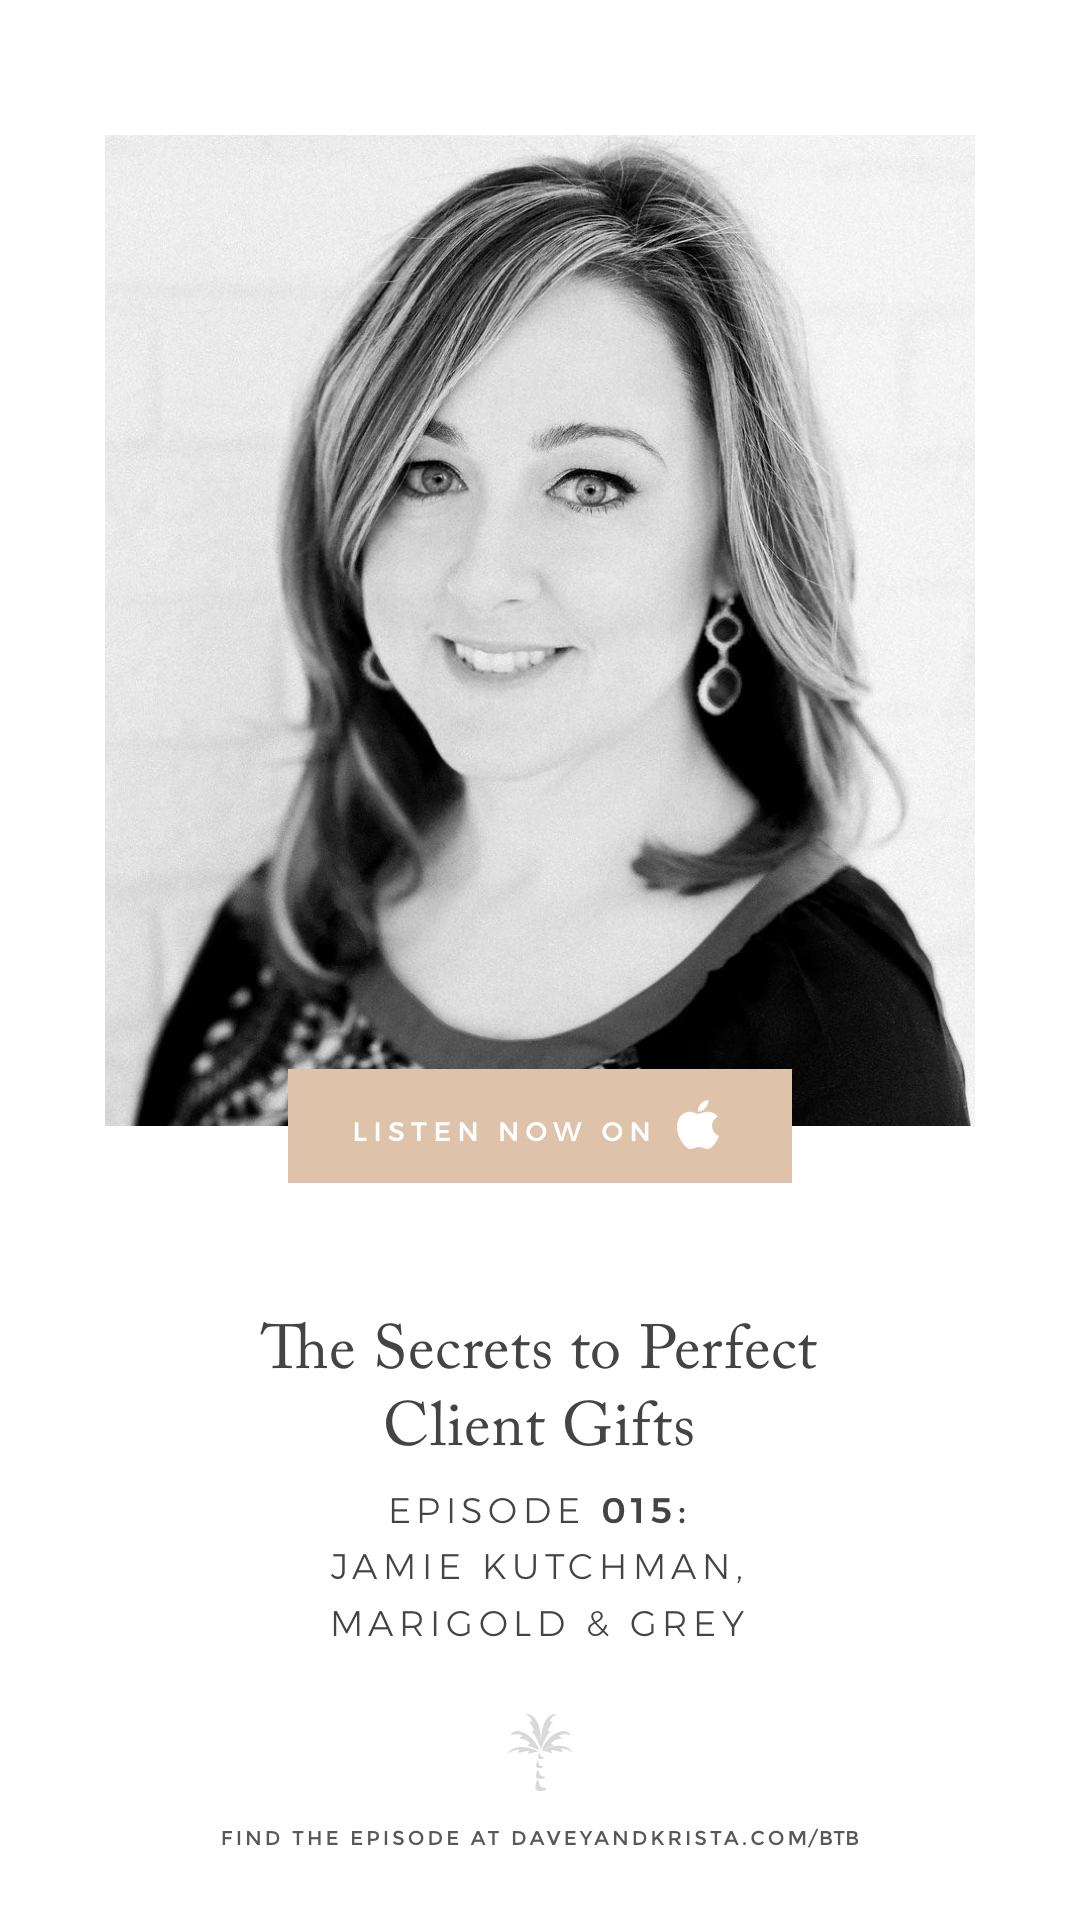 The Secrets to Perfect Client Gifts with Jamie Kutchman of Marigold & Grey | Brands that Book Podcast with Davey & Krista